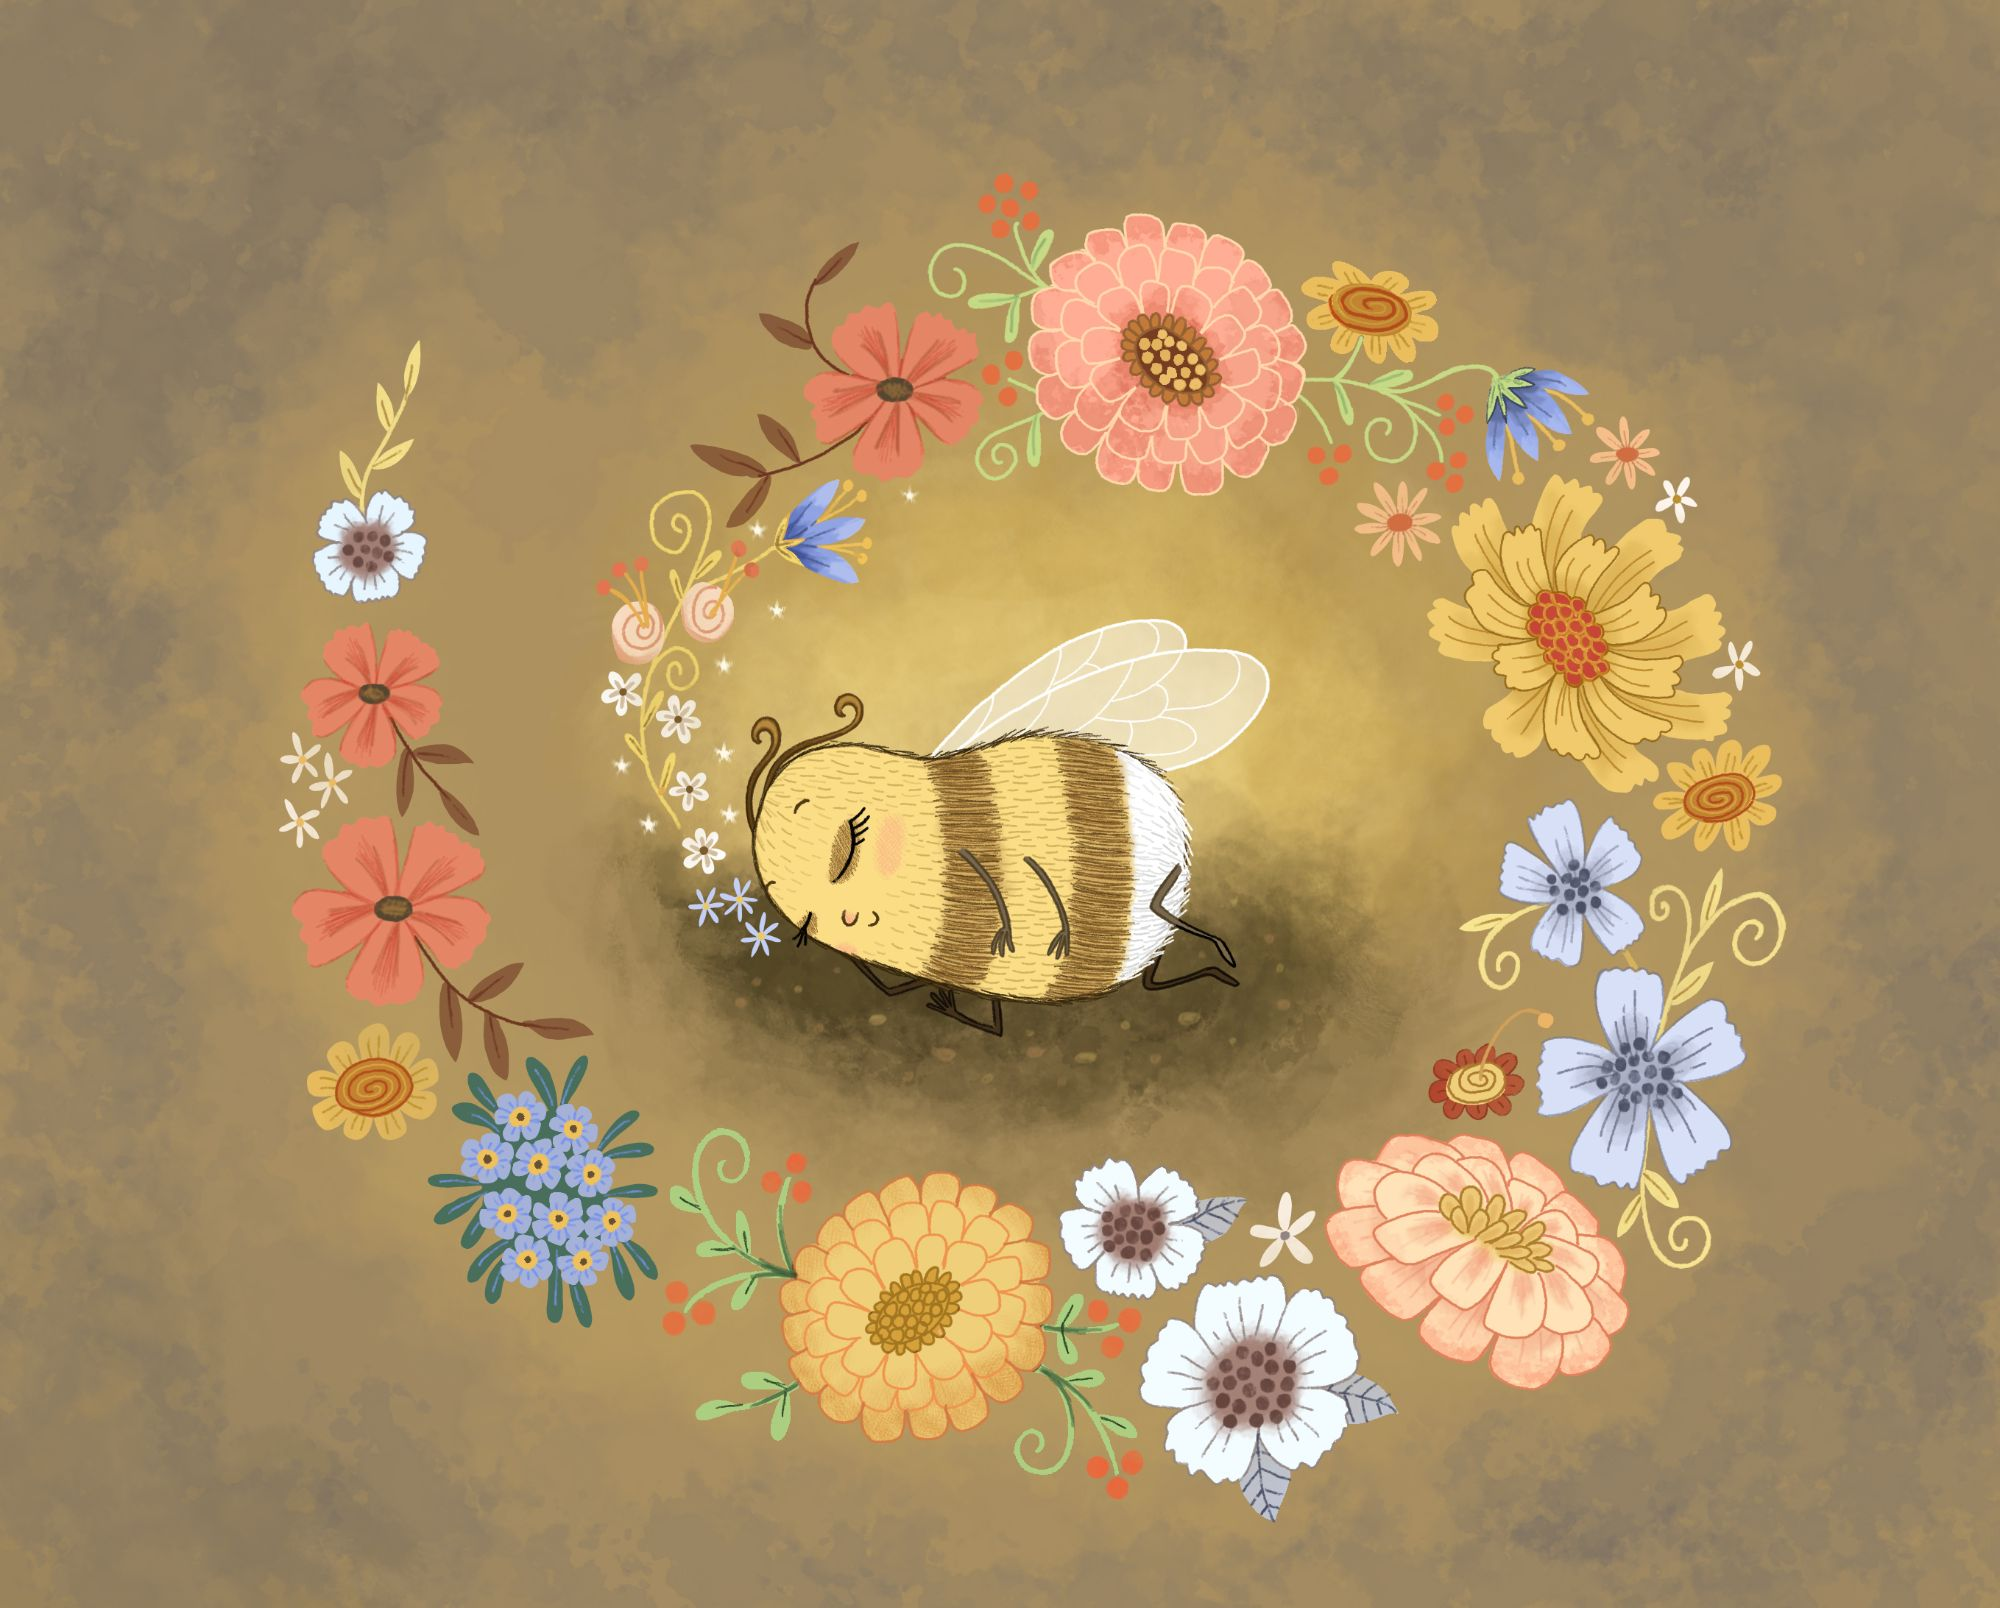 Bumble bee dreams of flowers illustration